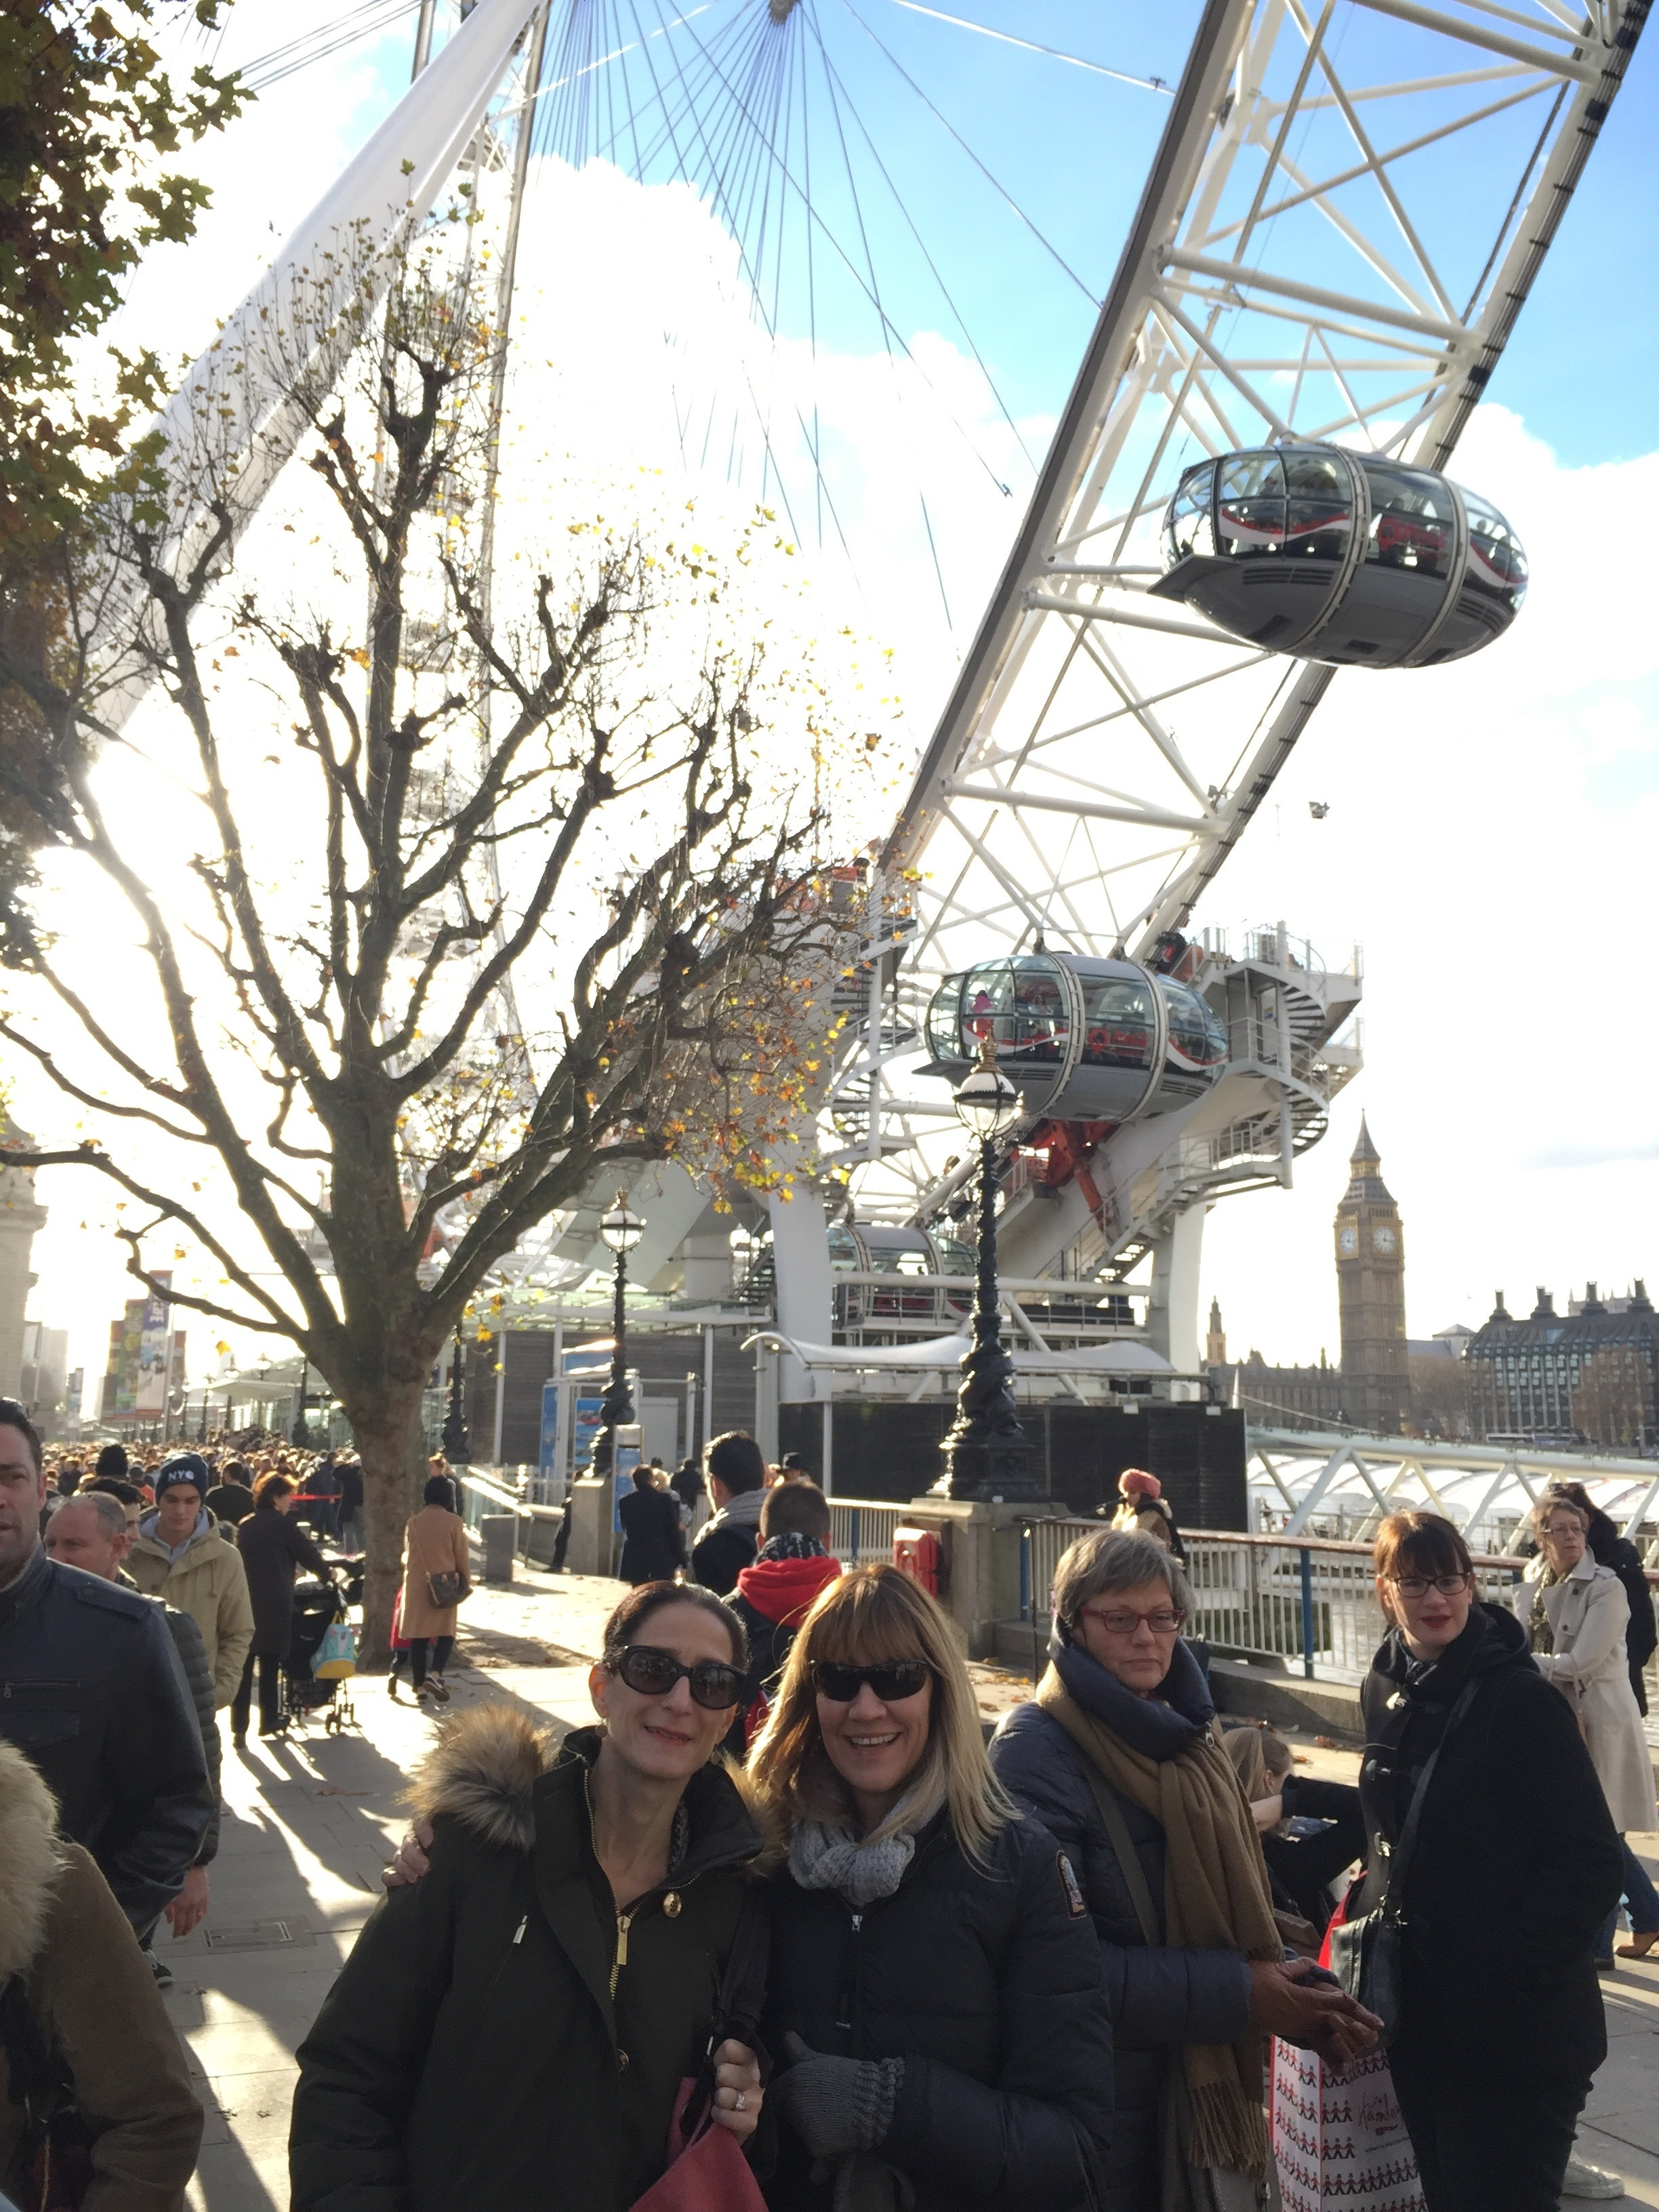 On South Bank in front of the London Eye